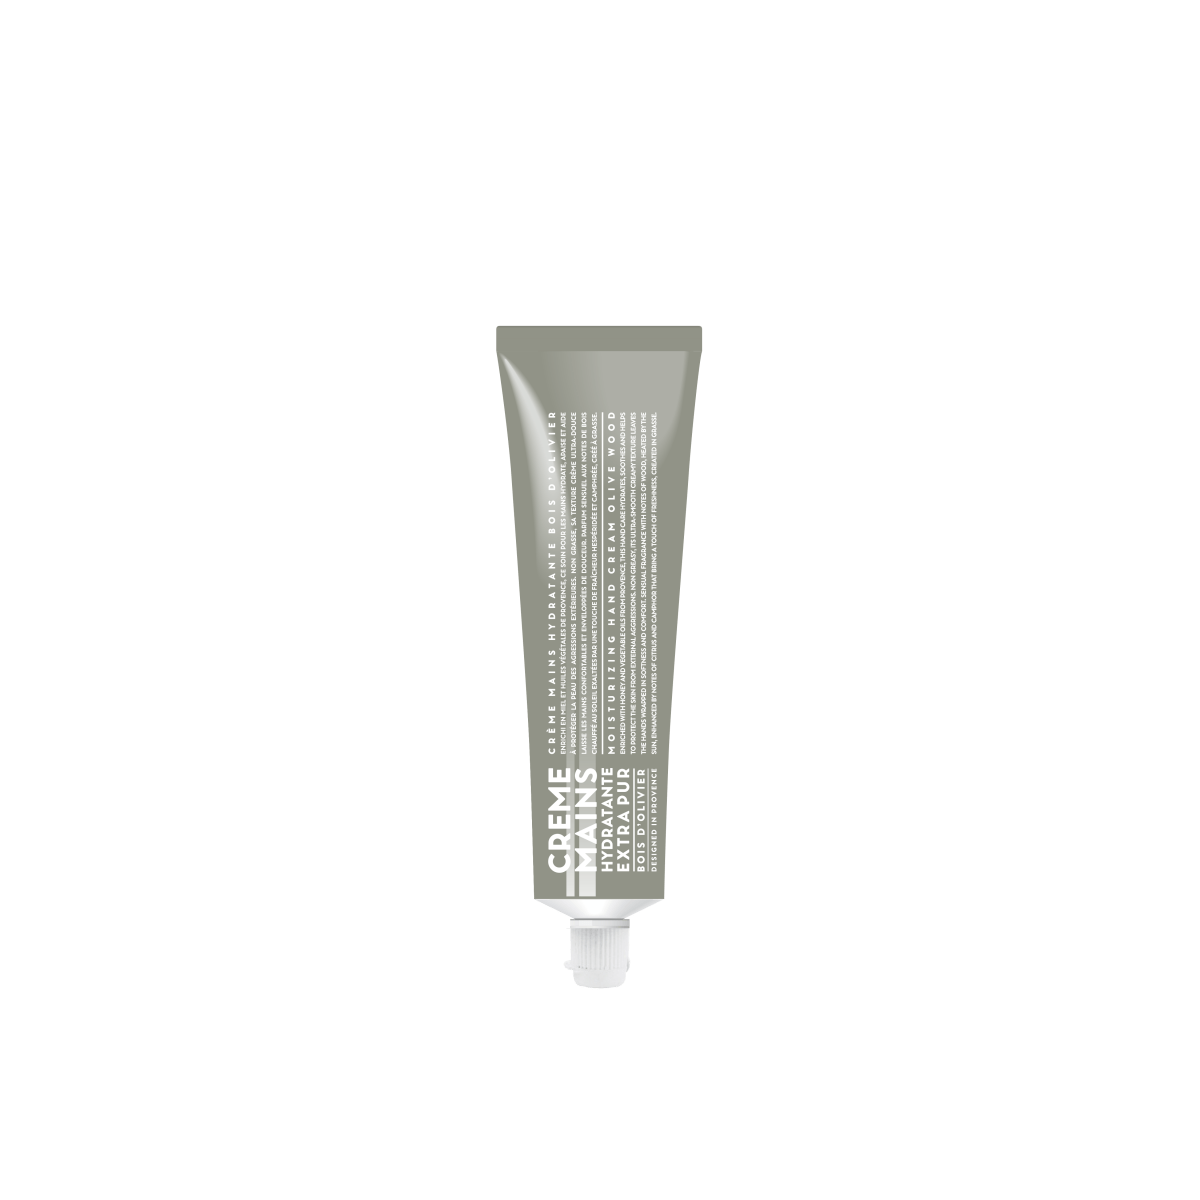 Compagnie de Provence Olive Wood Hand Cream 100ml